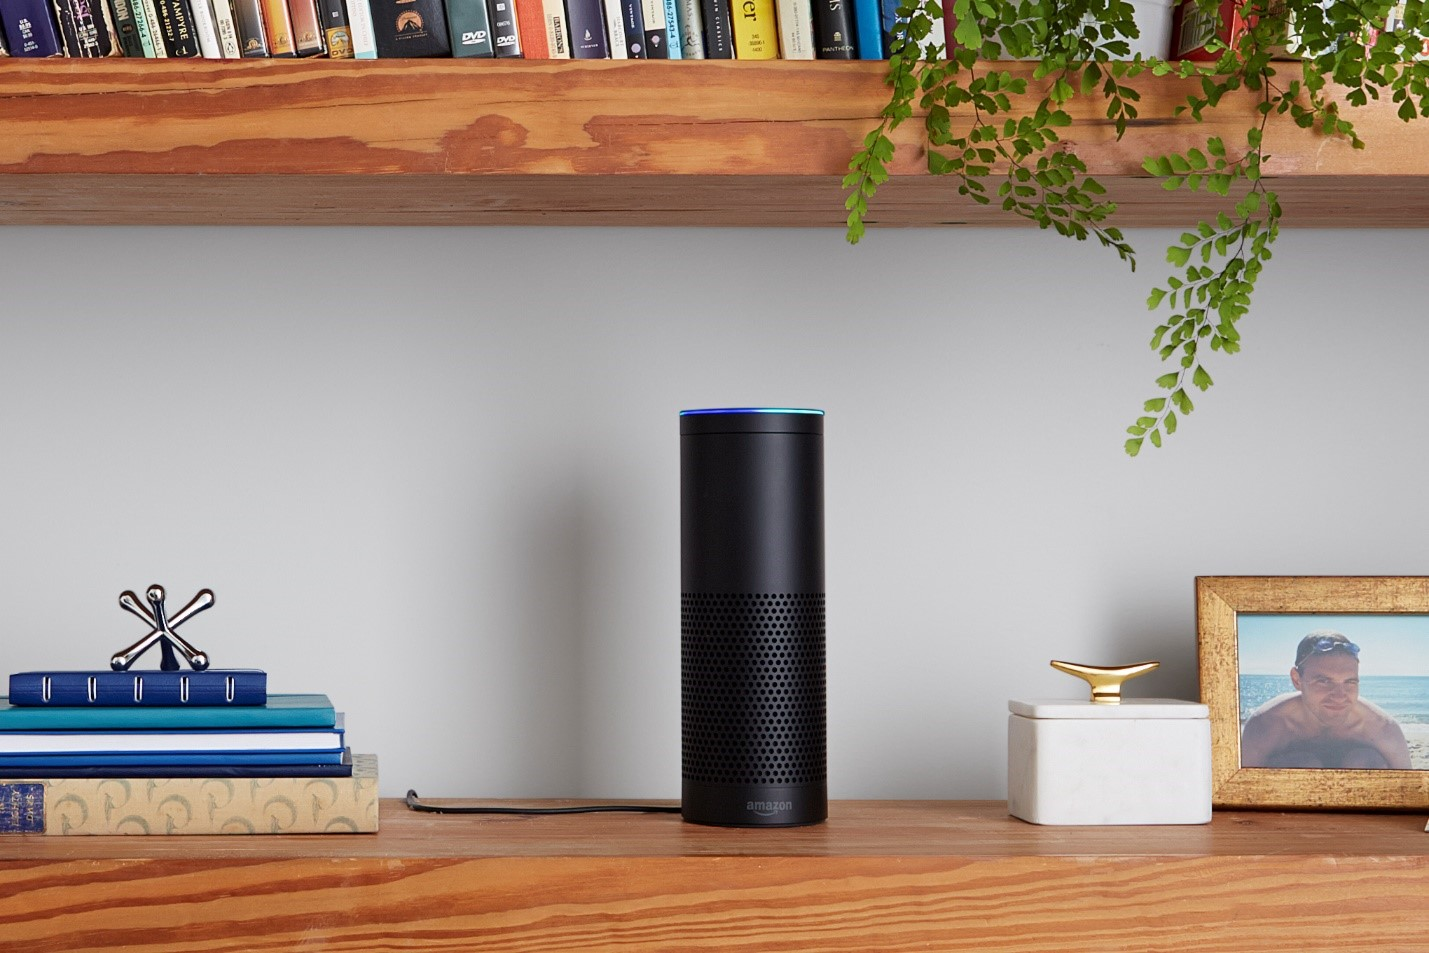 How You Can Control Your Home Automation System with Amazon Alexa